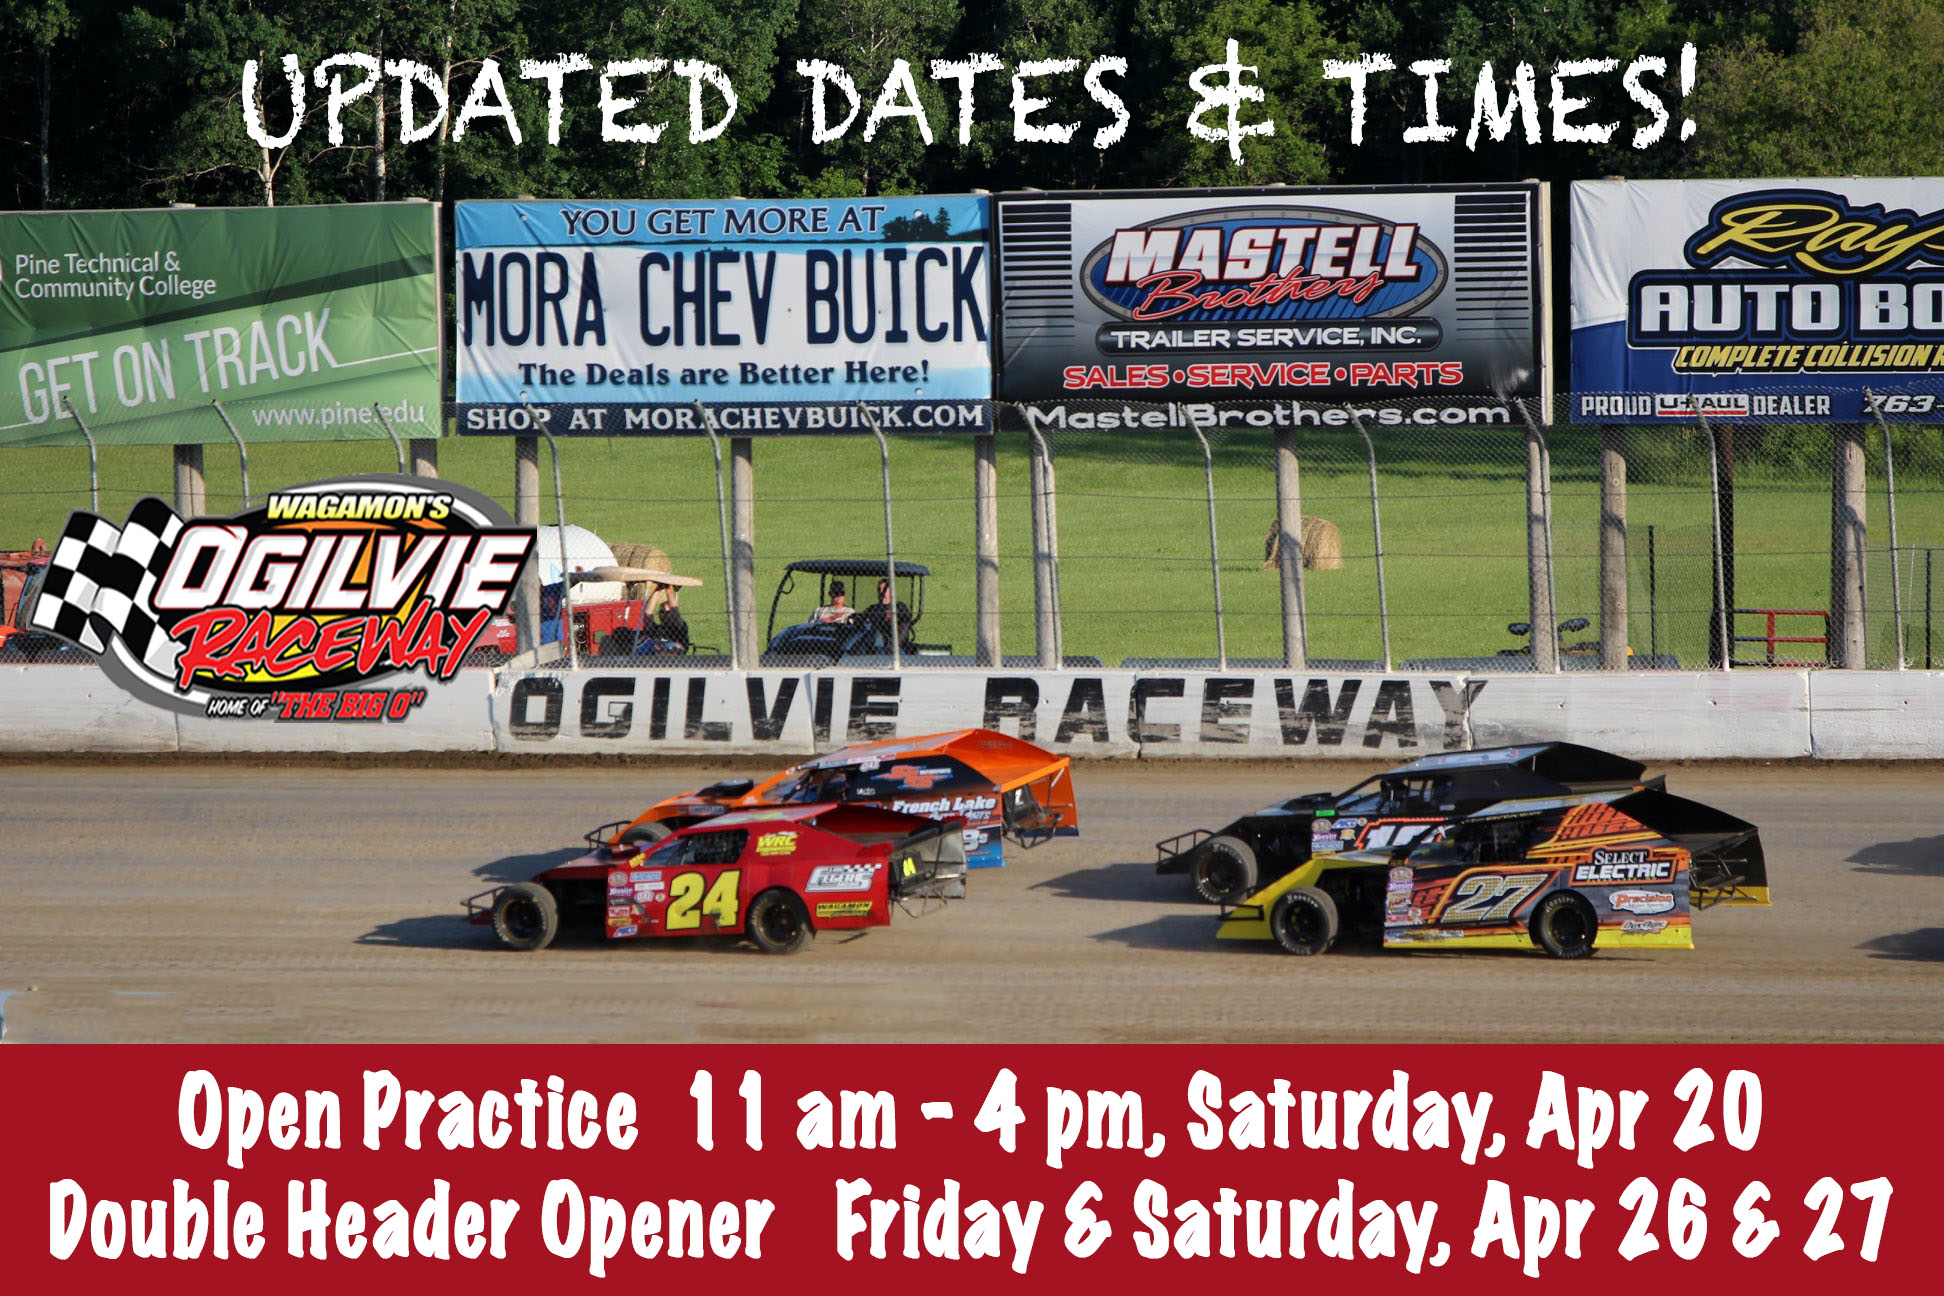 Double Header Season Opener – Friday & Saturday, April 26 and 27